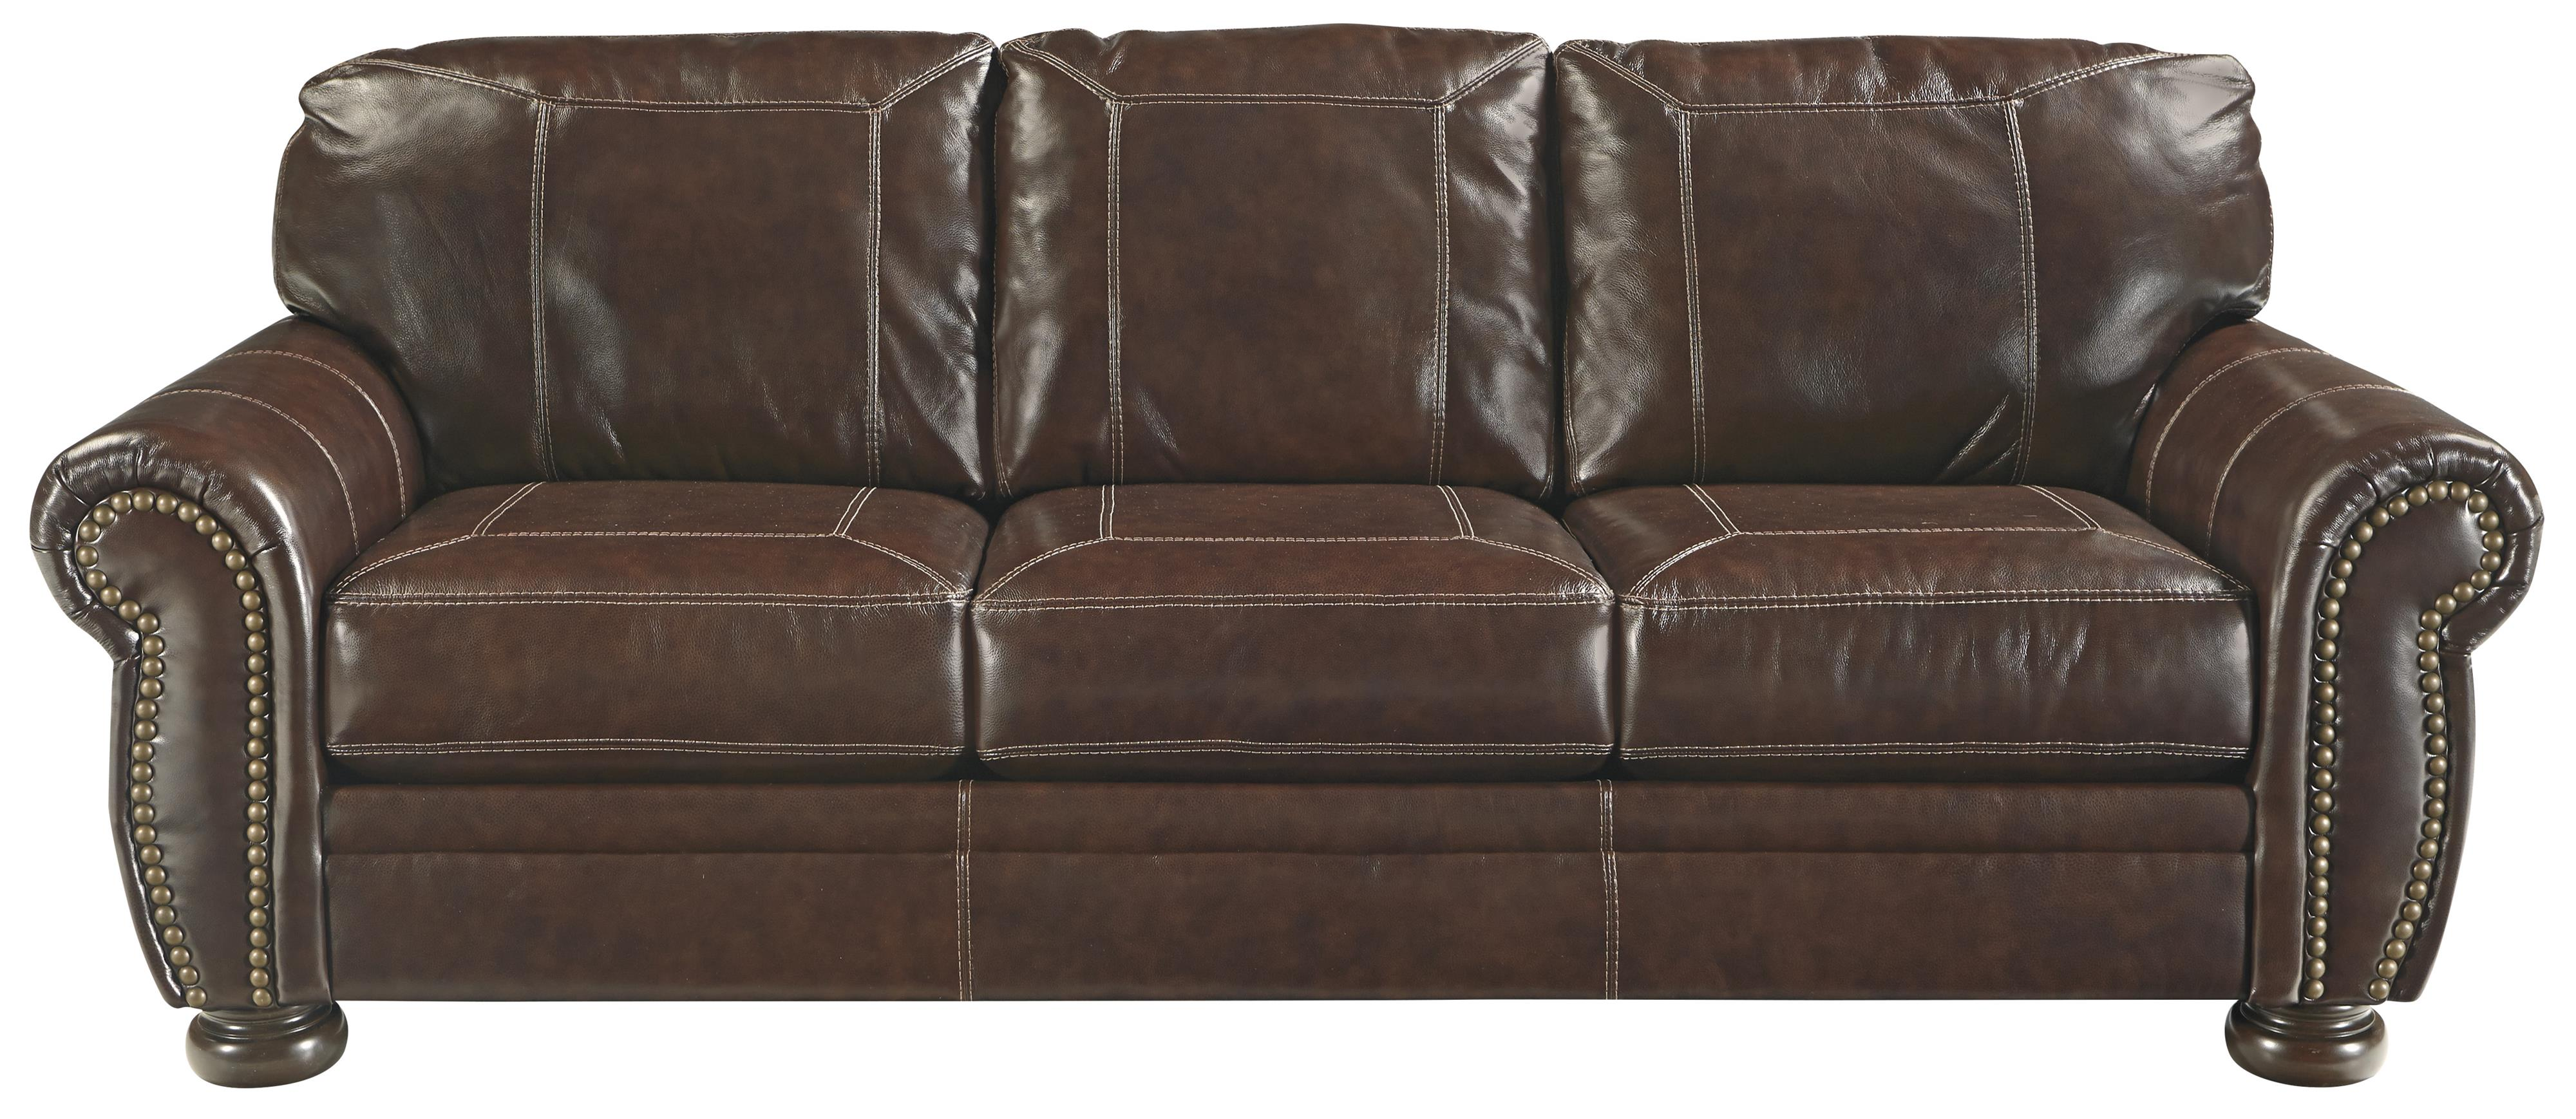 Traditional Queen Sofa Sleeper With Memory Foam Mattress